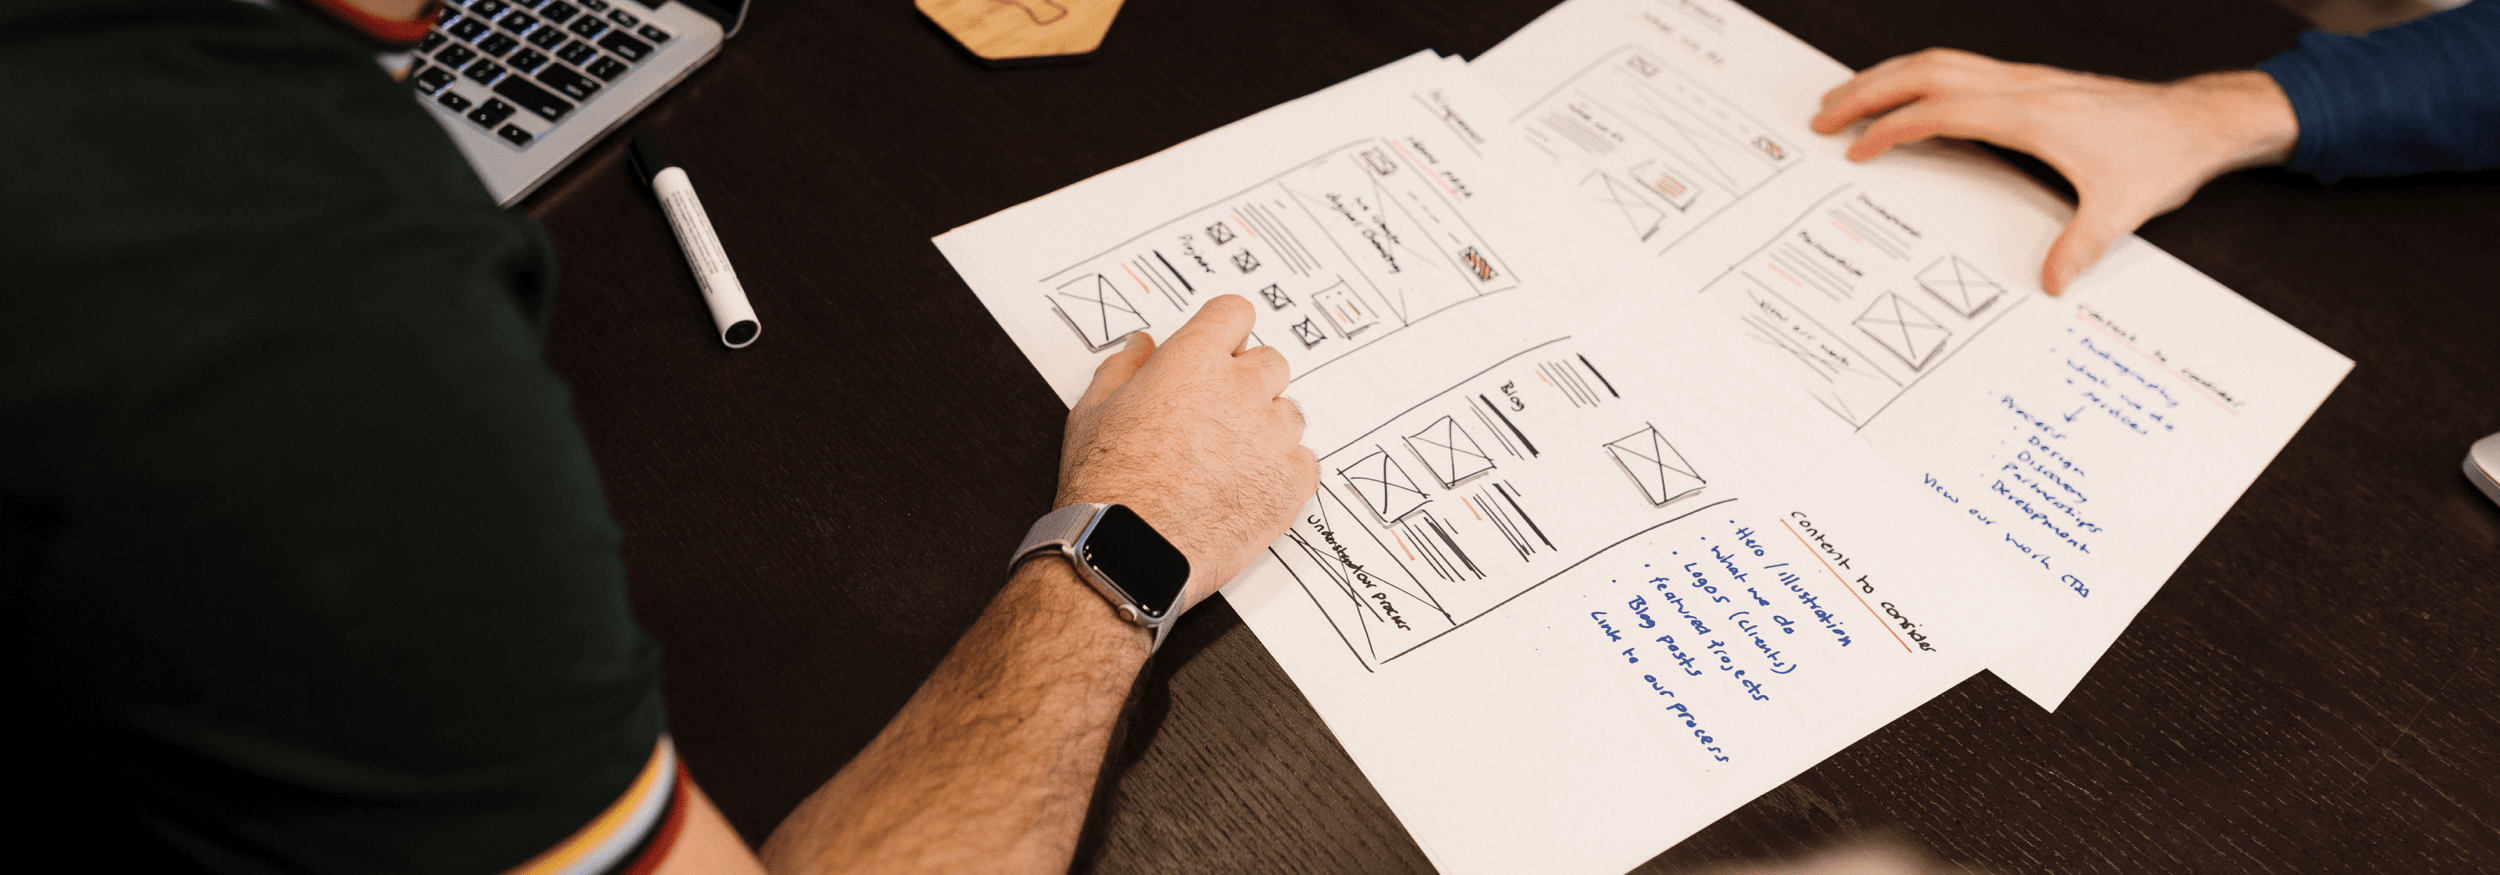 hands on wireframes